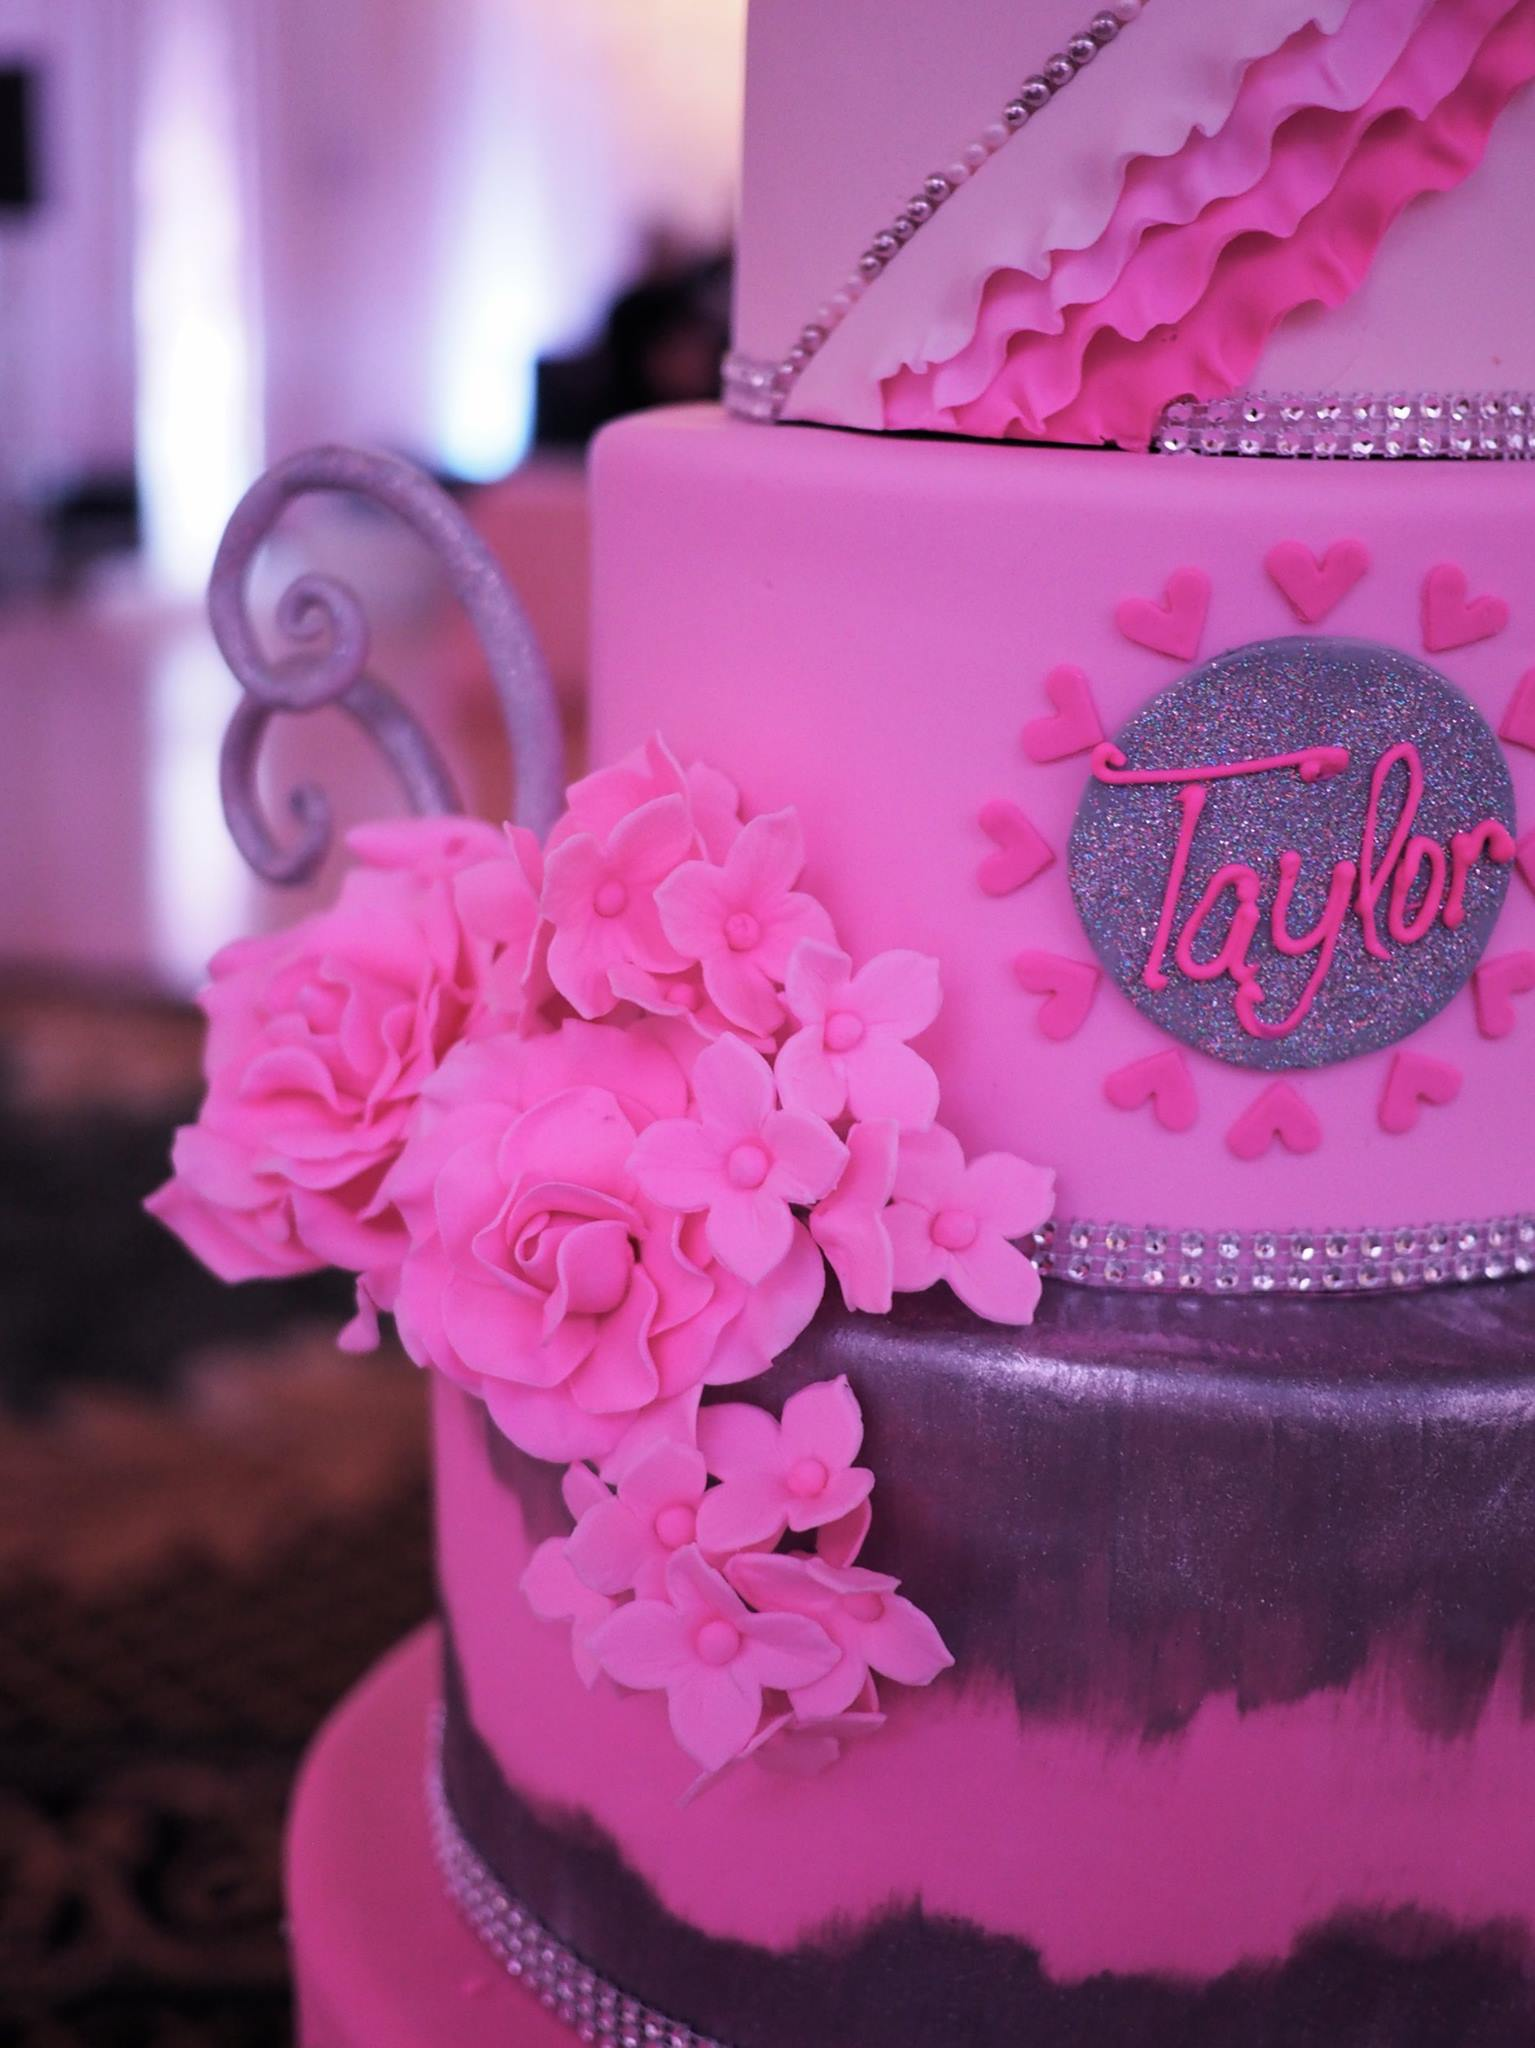 Think PINK and Par-TAY for Taylor - Cutie Patootie Creations